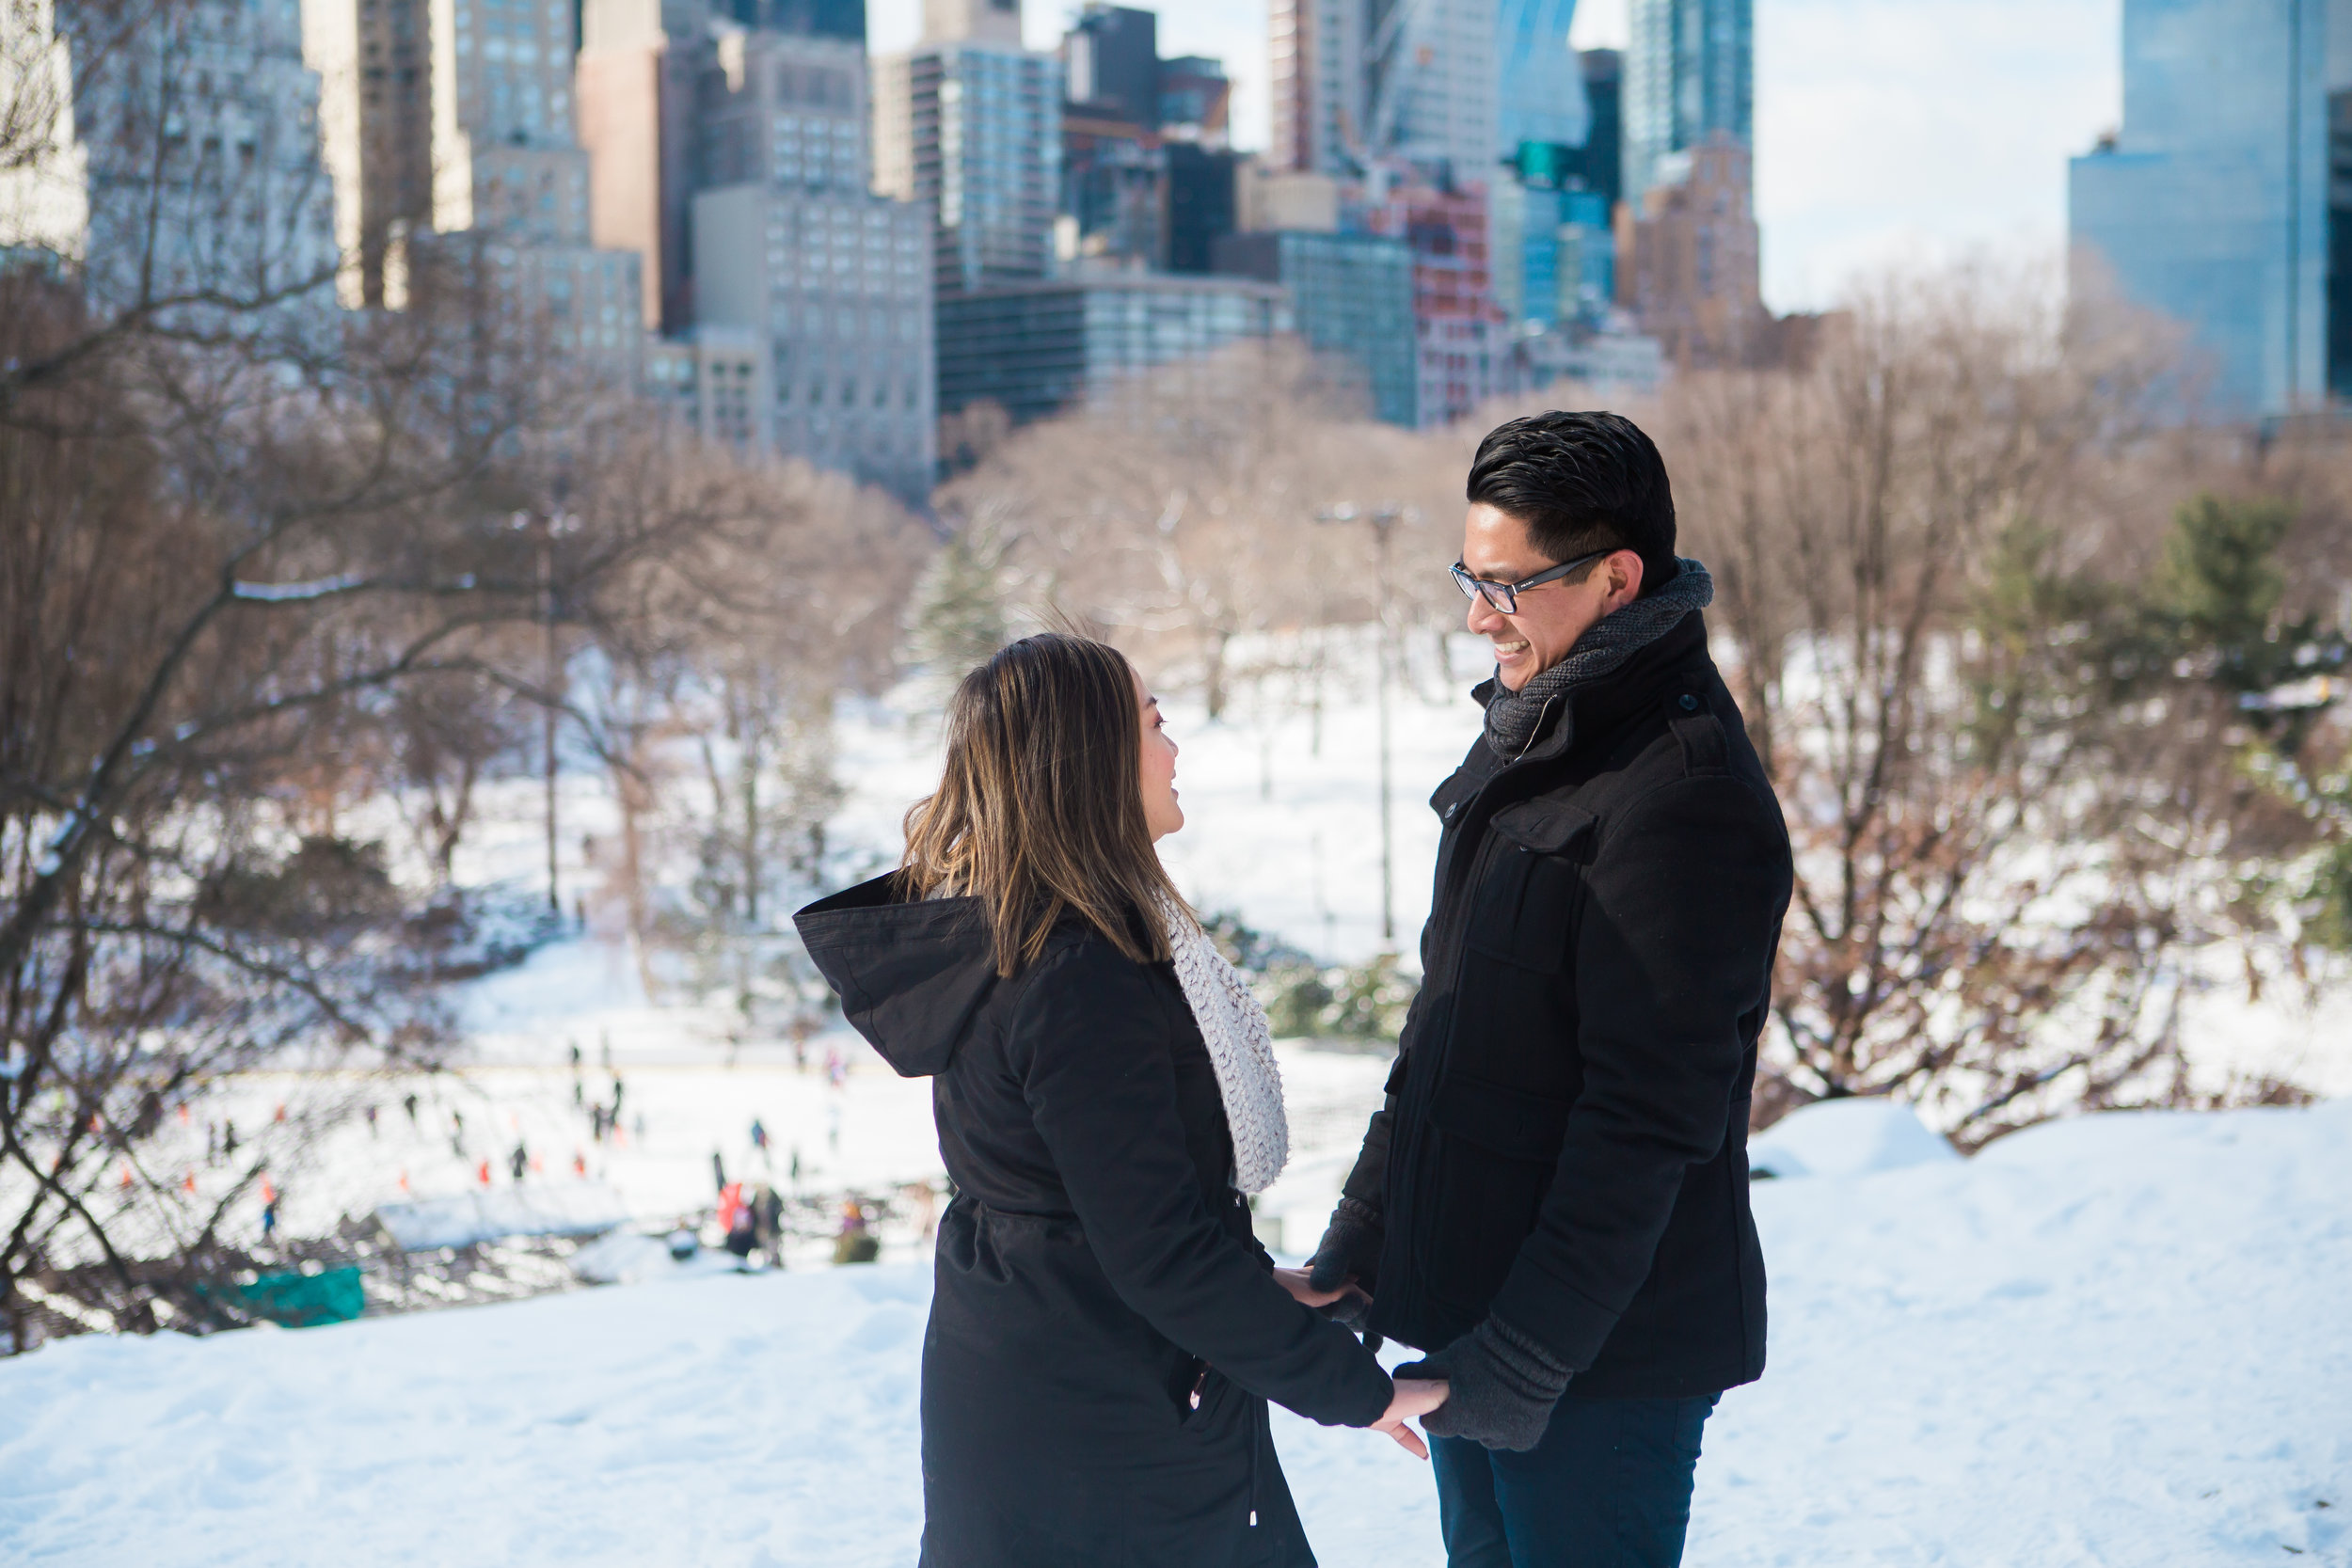 Kate-Alison-Photography-Kristin-Daniel-Central-Park-NYC-Engagement-Session-53.JPG